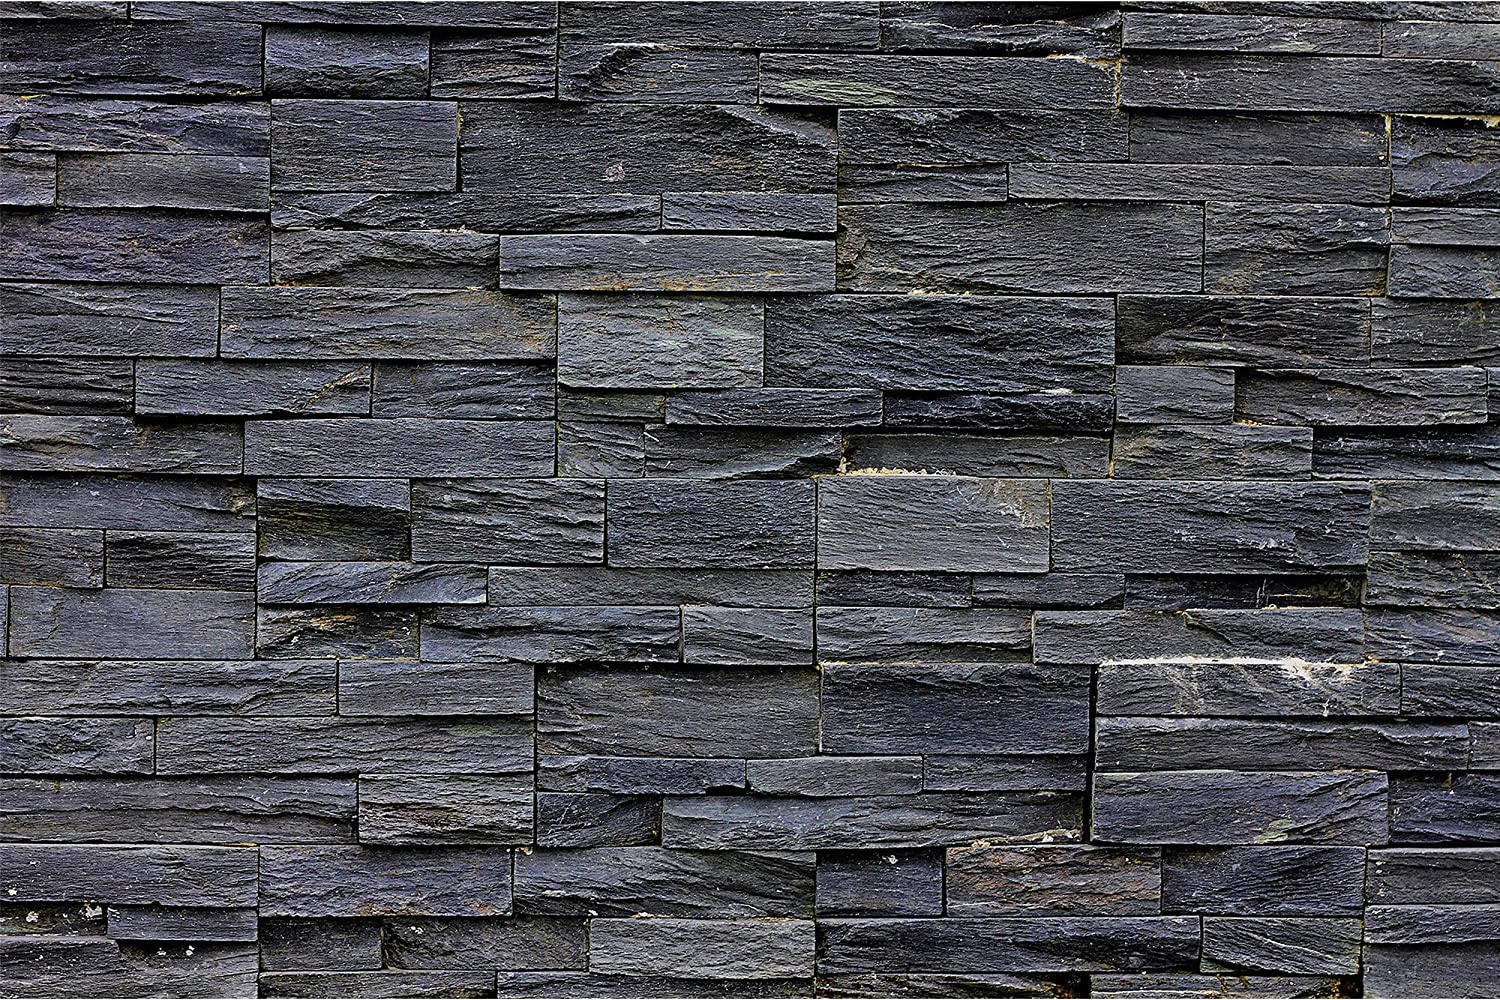 GREAT ART Poster – Black Stonewall – Picture Decoration Industrial Design Natural Dark Stone Realistic Wall Cladding Modern Bricks Image Photo Decor Wall Mural (55x39.4in - 140x100cm)